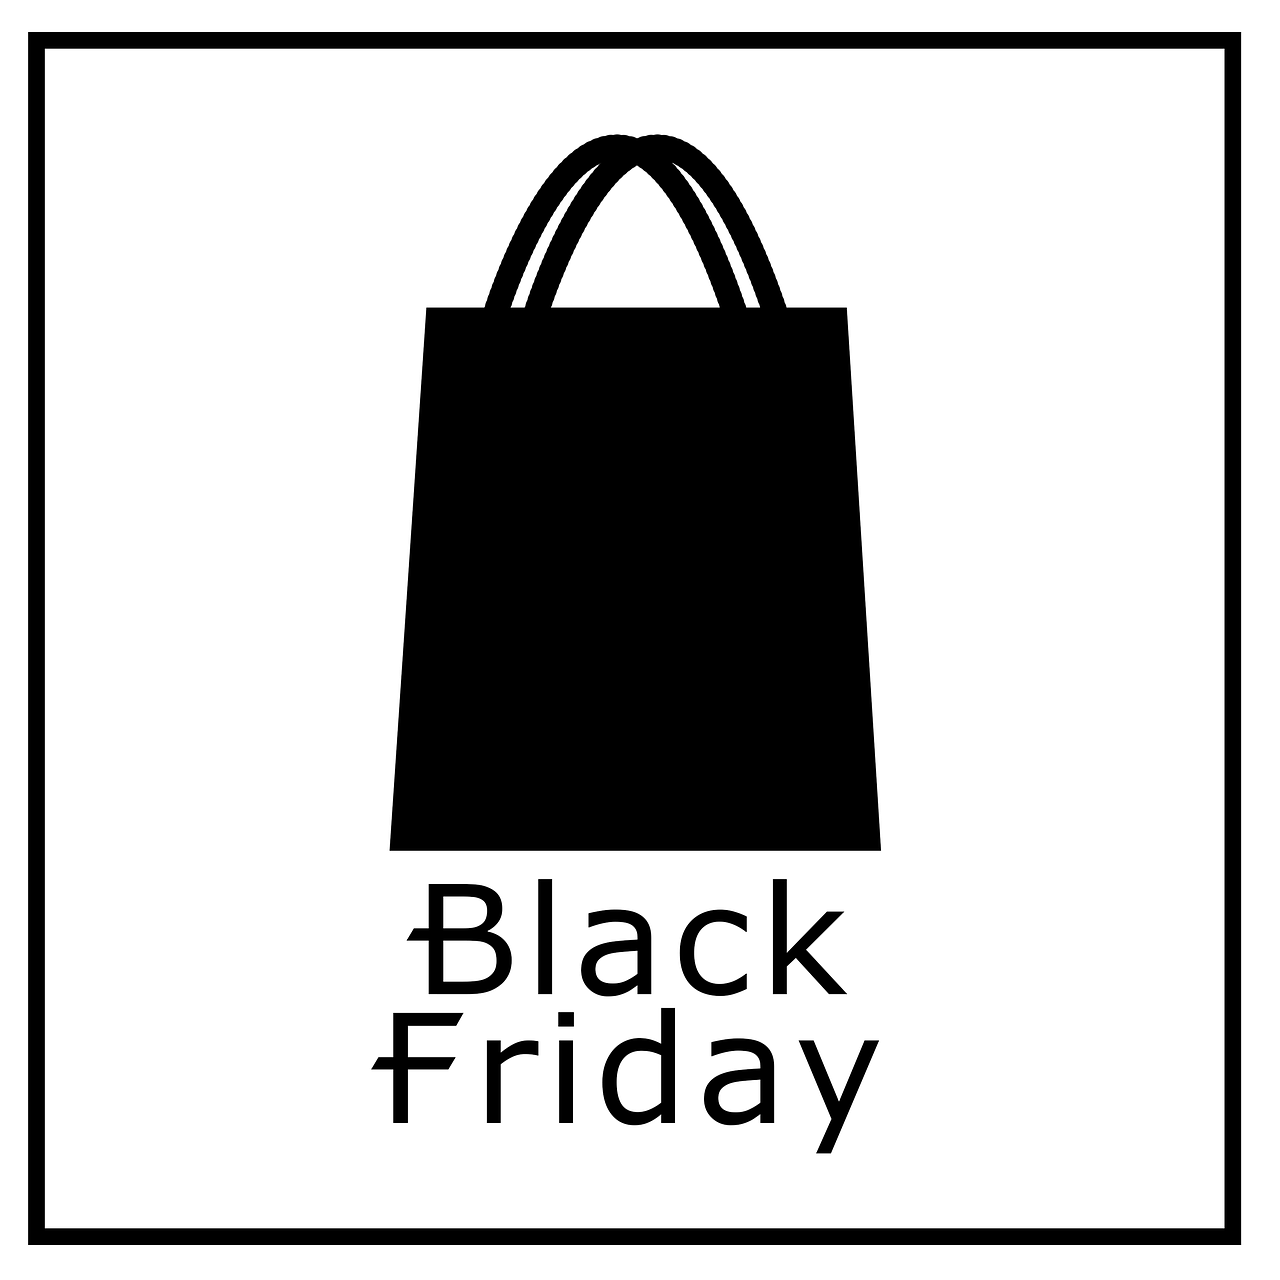 black-friday-2901754_1280-1280x1280.png